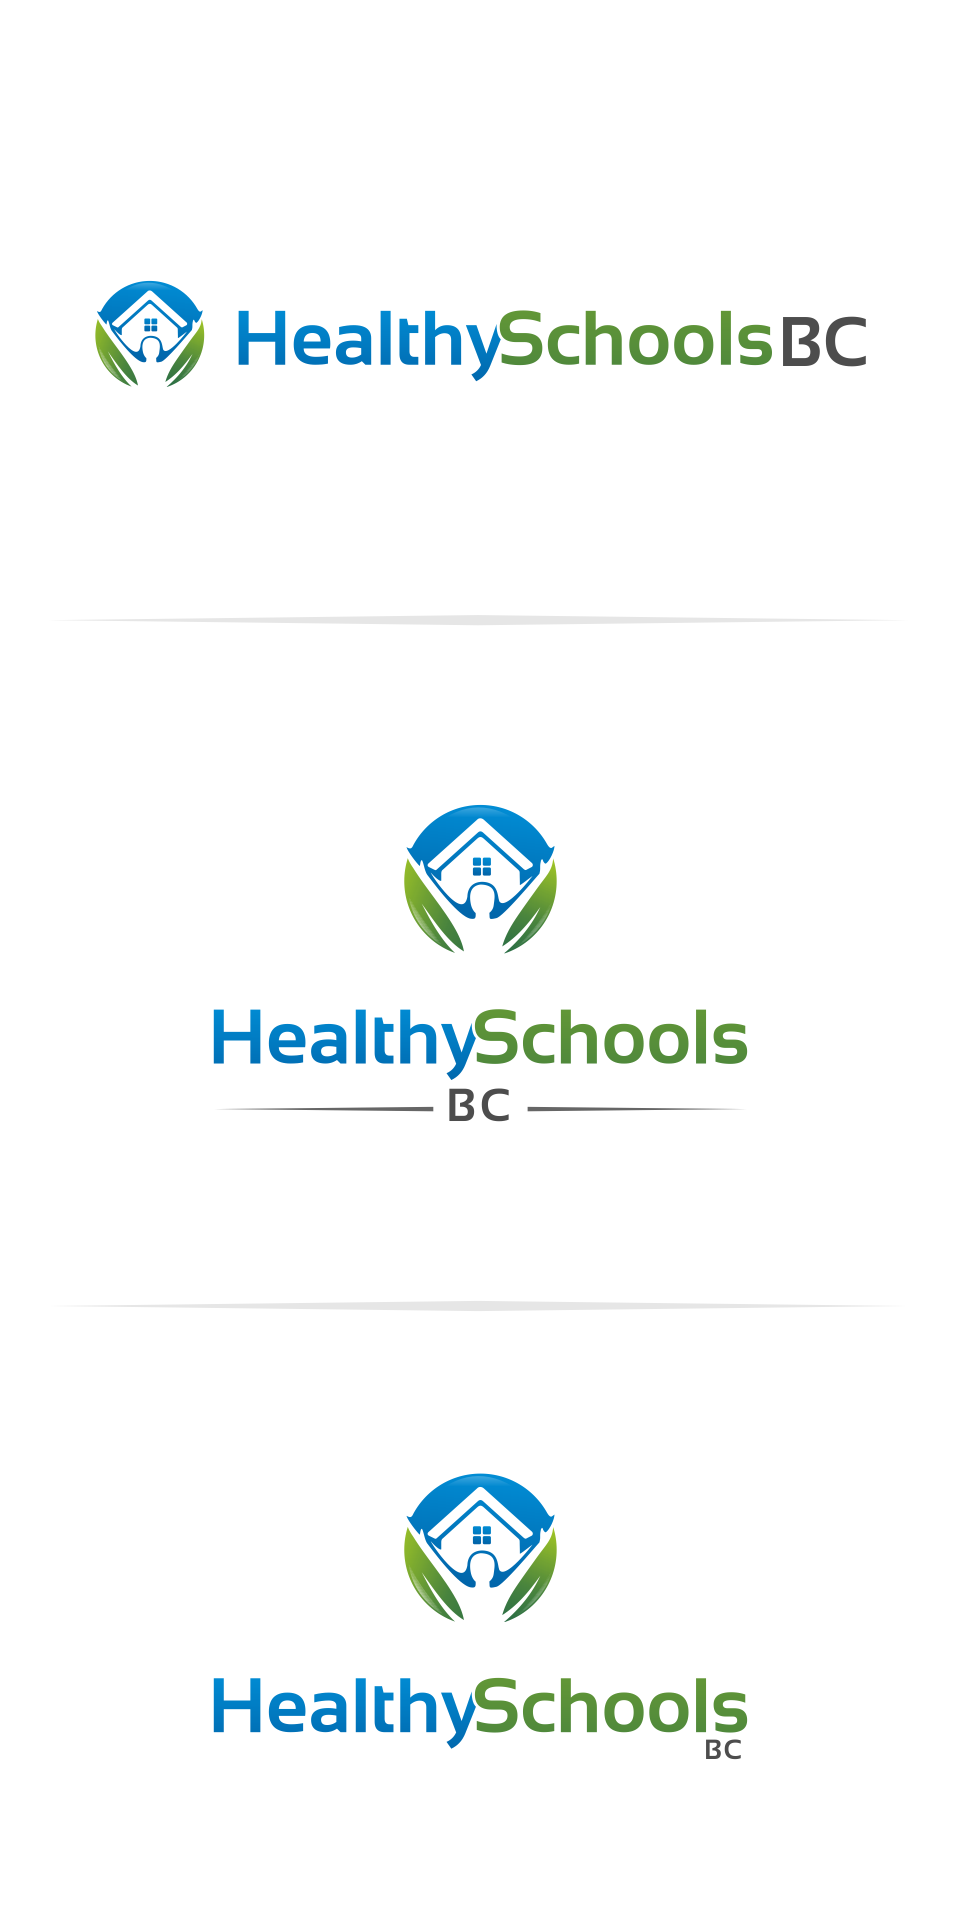 Logo Design by Mitchnick Sunardi - Entry No. 39 in the Logo Design Contest SImple, Creative and Clean Logo Design for Healthy Schools British Columbia, Canada.